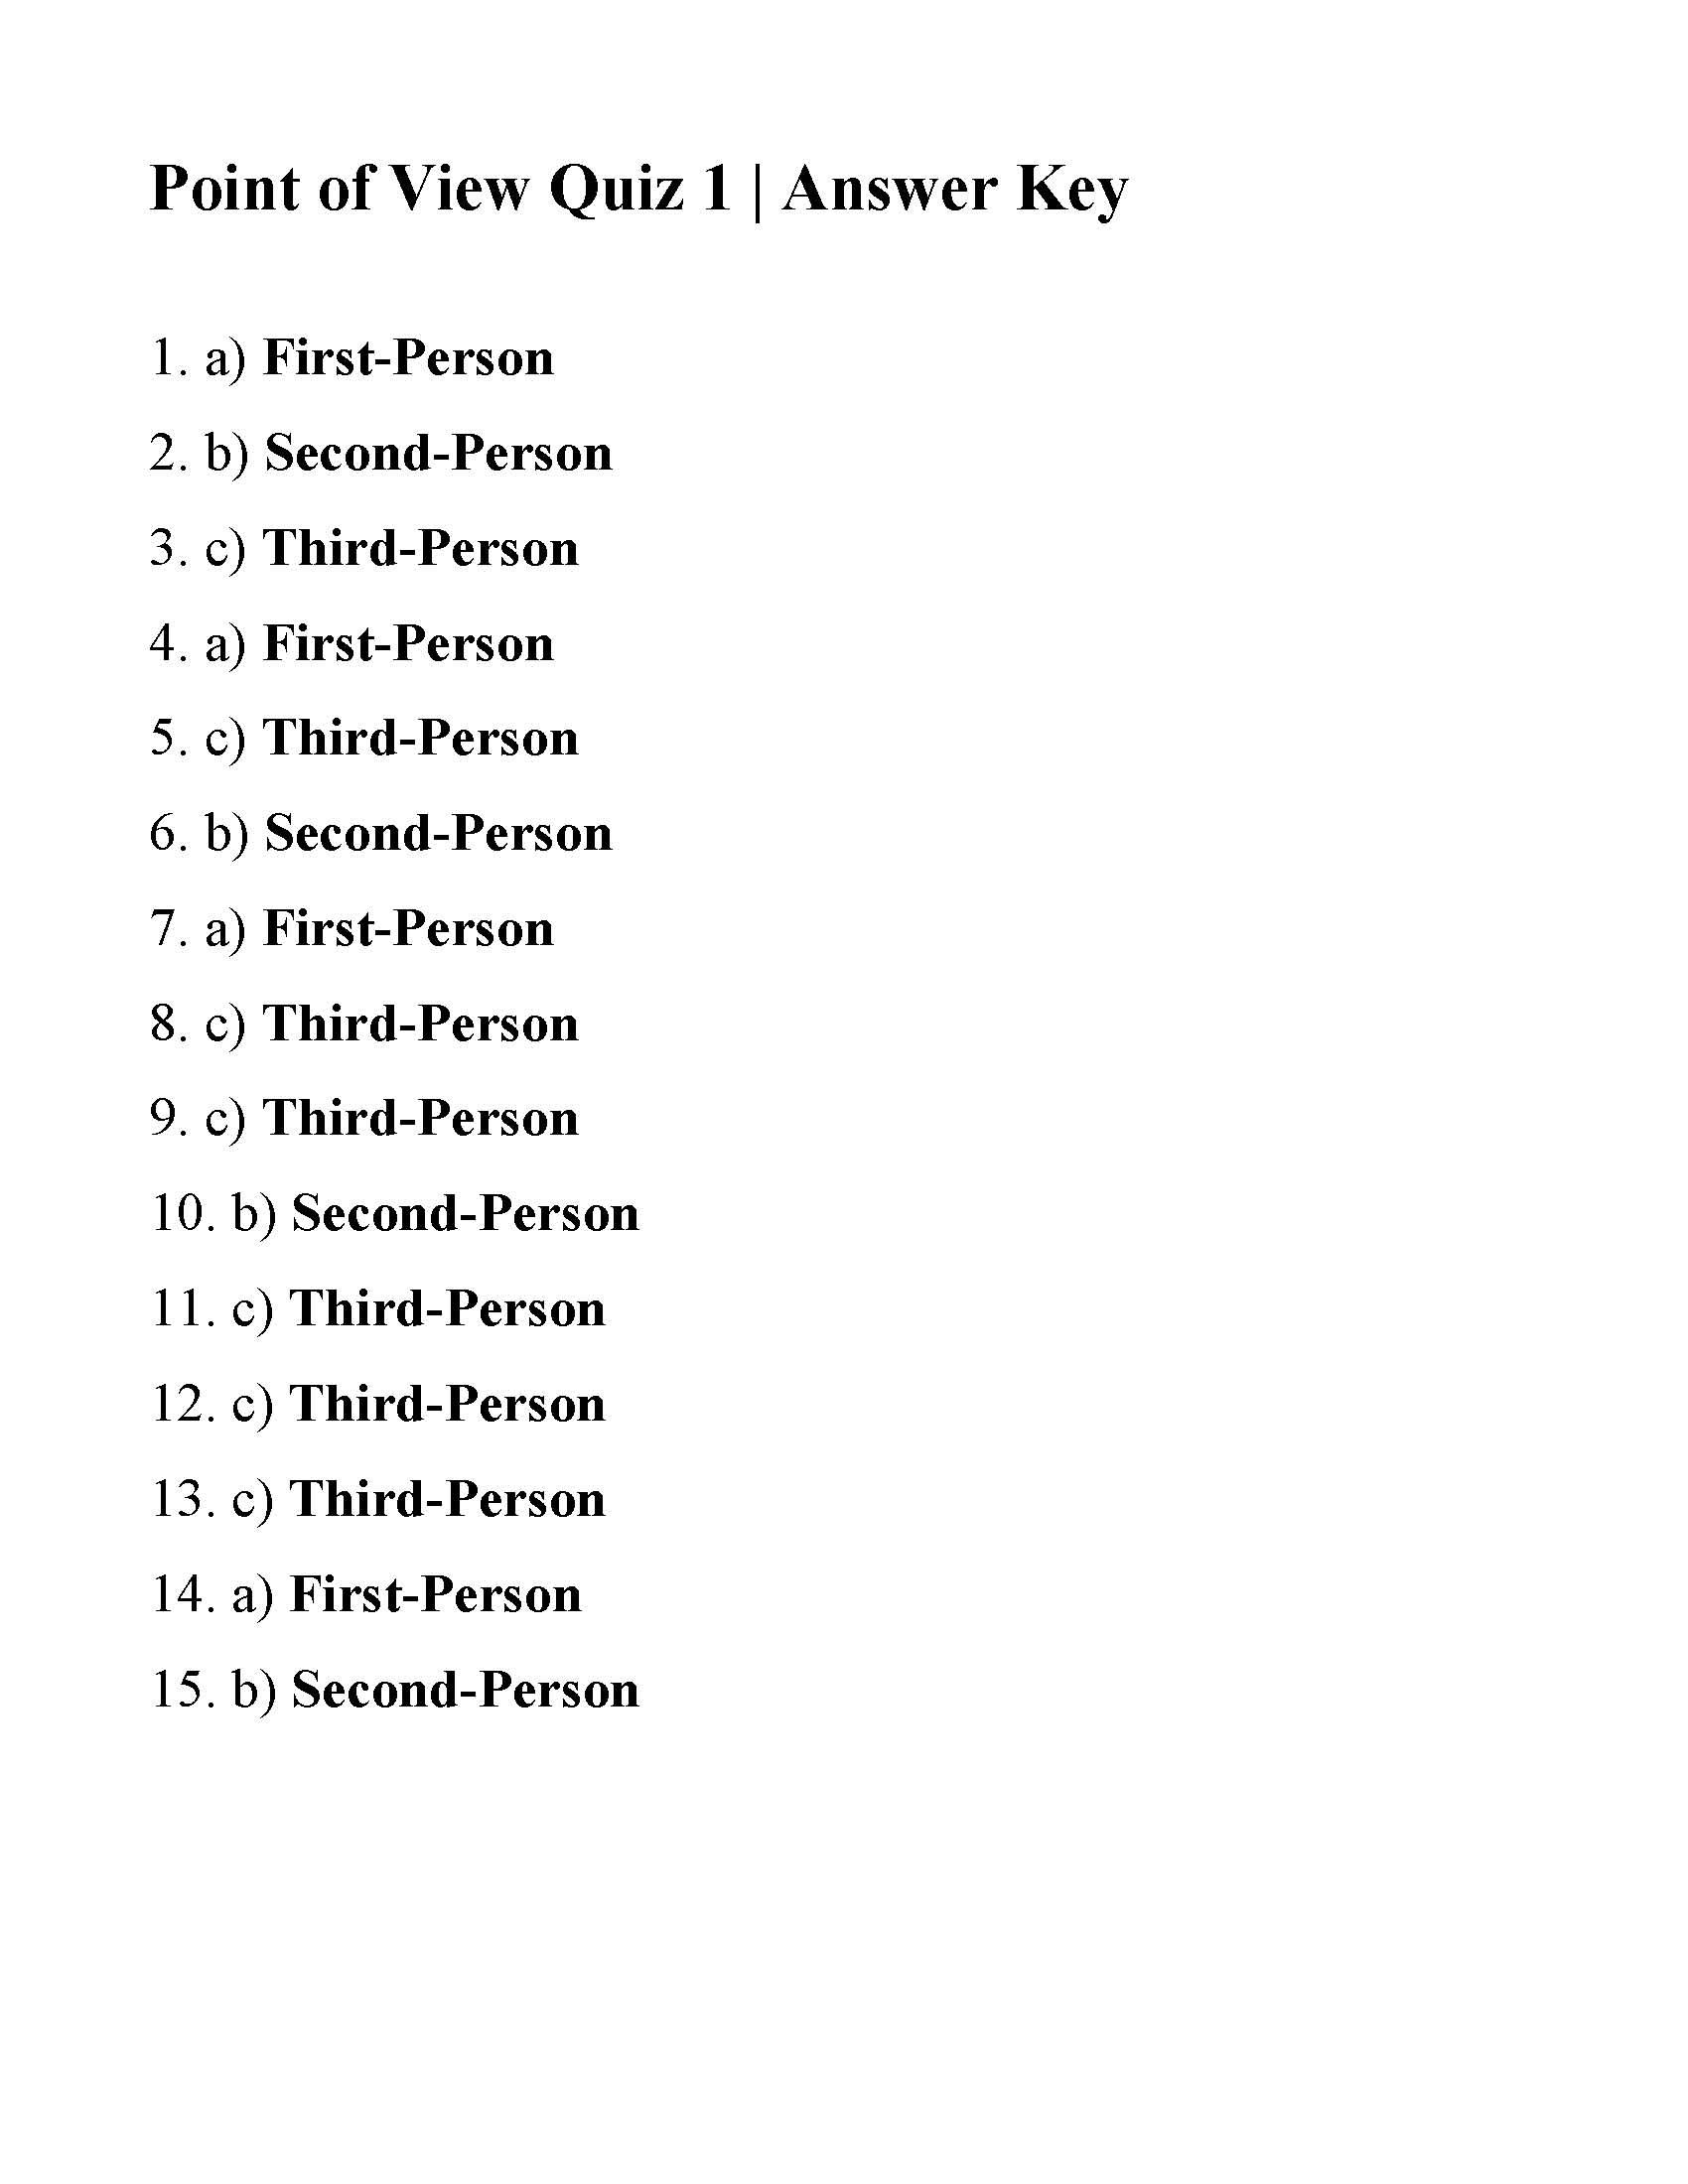 This Is The Answer Key For The Point Of View Quiz 1 Answers Point Of View Quiz Are you looking for free worksheets and activities covering adjectives and adverbs? answer key for the point of view quiz